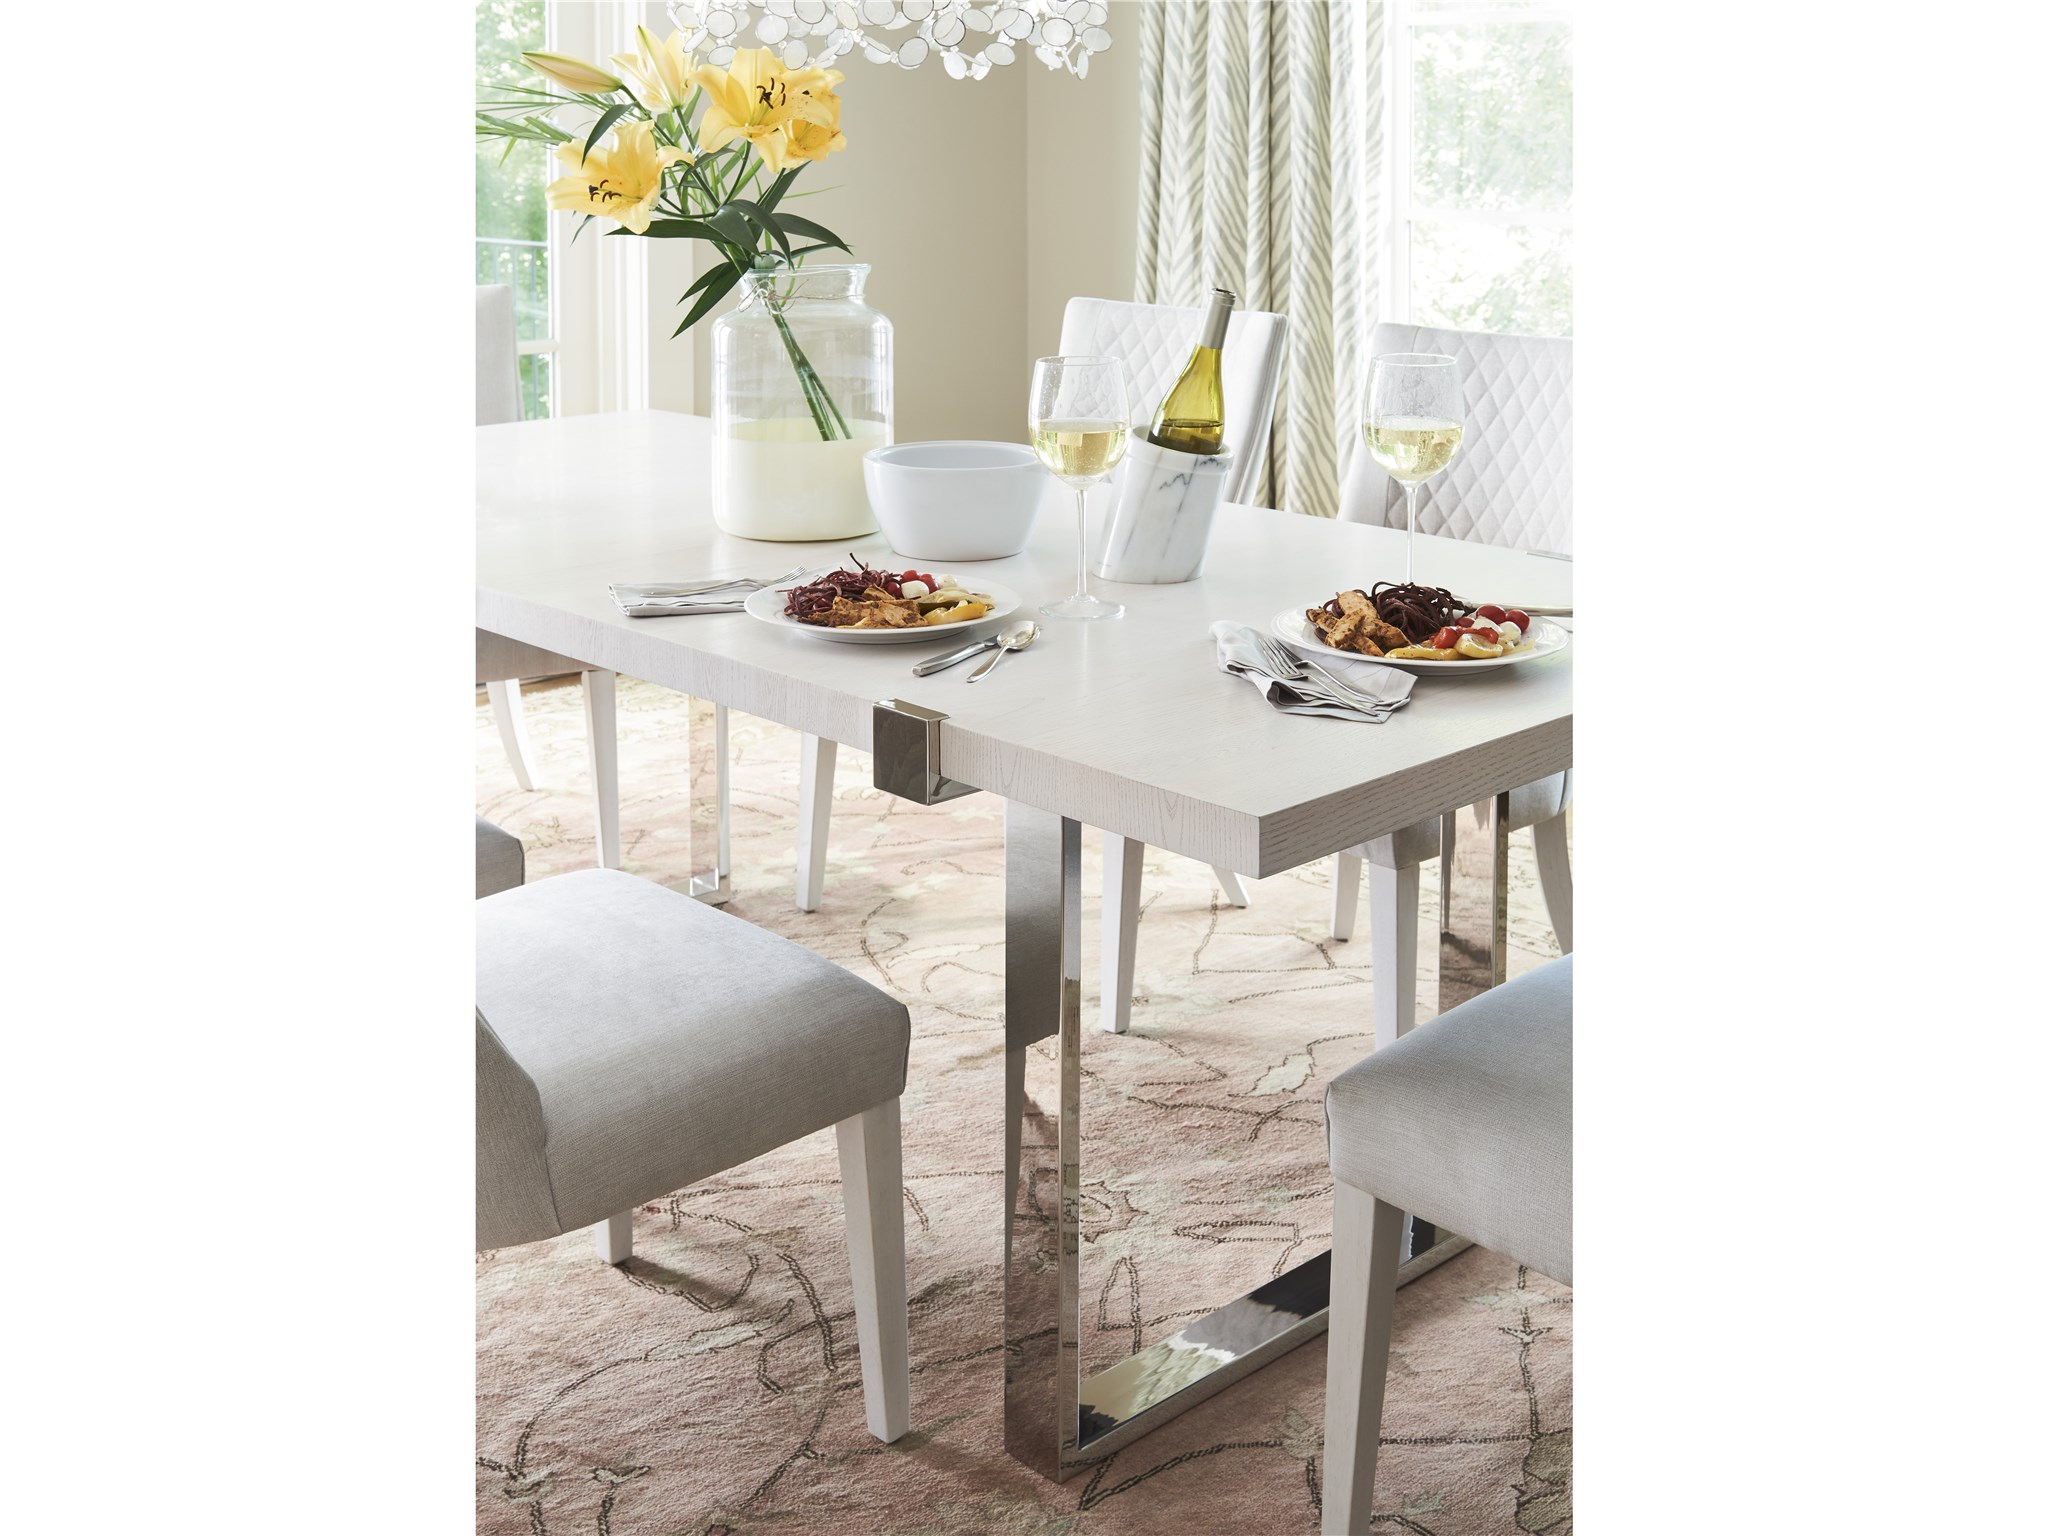 Paradox Paradox Dining Table | Universal Furniture Within Most Current Giles 3 Piece Dining Sets (View 19 of 20)